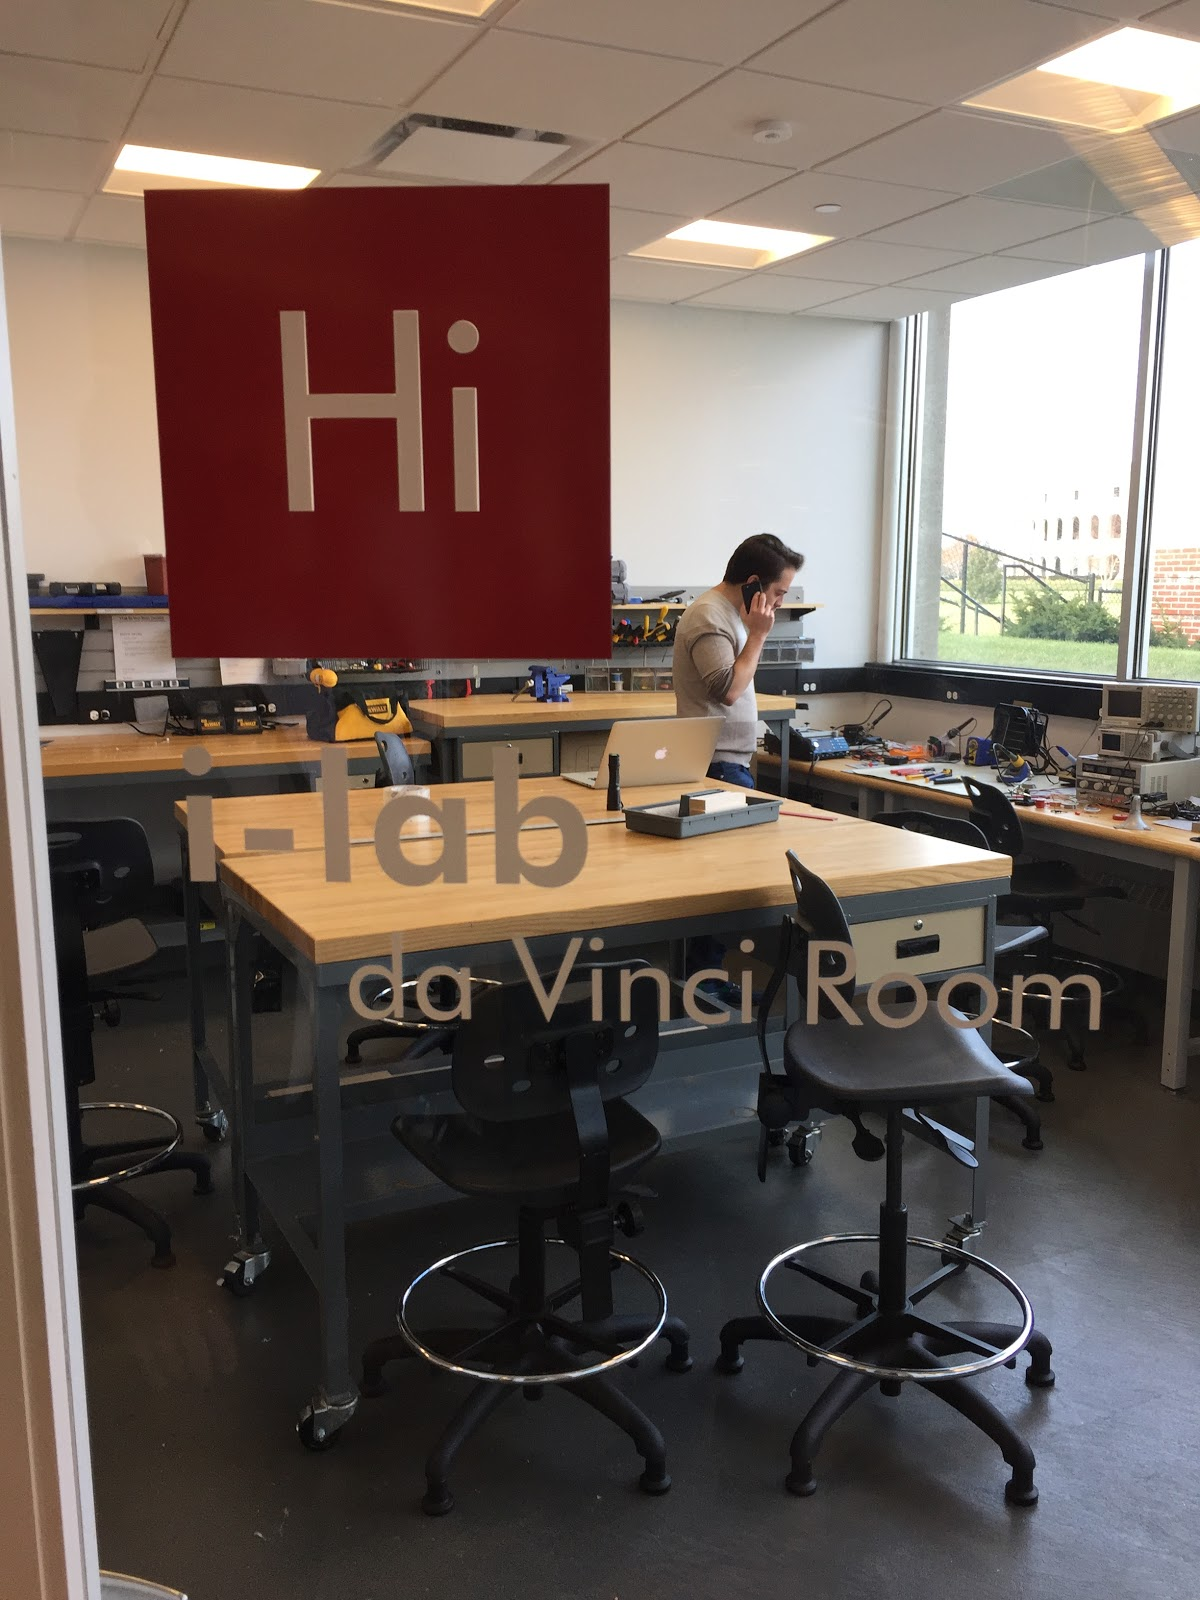 The daVinci room is a makerspace nested within the innovation lab that allows for hands-on 3D desigining and prototyping.